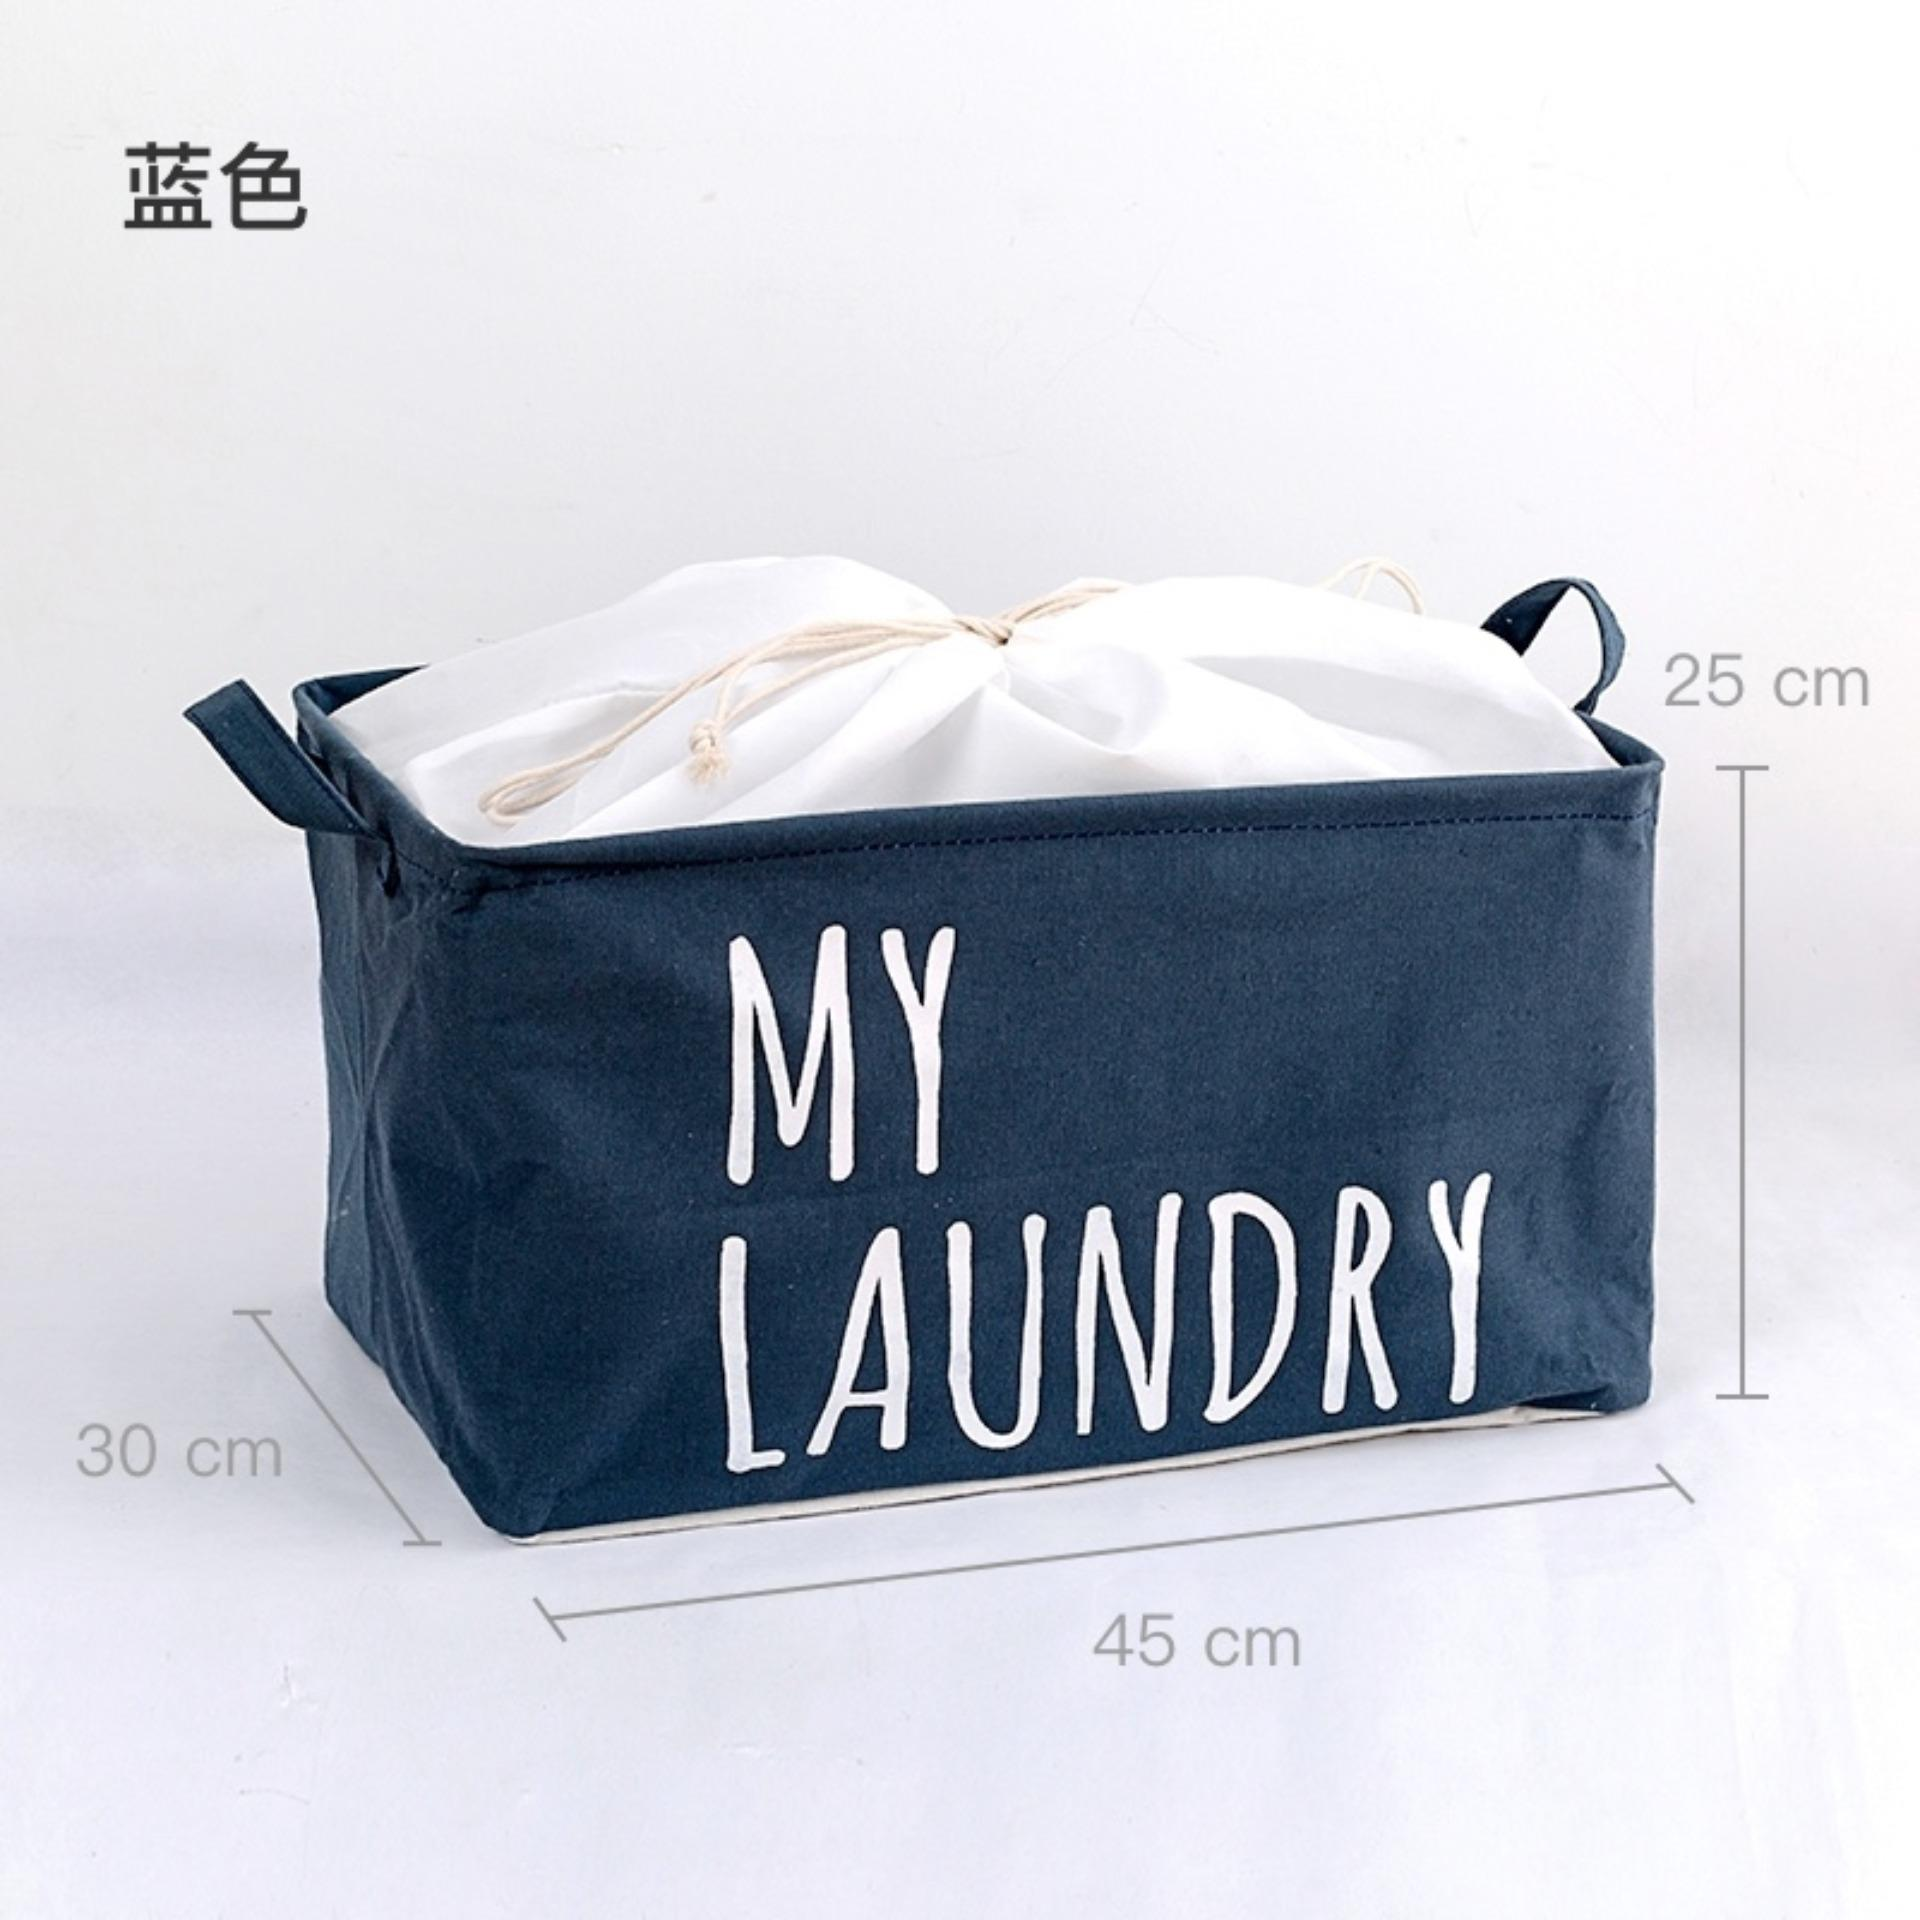 Sale Mimosifolia Outdoor Garden Picnic Baskets Bathroom Folding Storage Bins With Cubes Archival Storage Boxes For Clothes Toy Boxes Laundry Basket Shelf Baskets Blue Intl